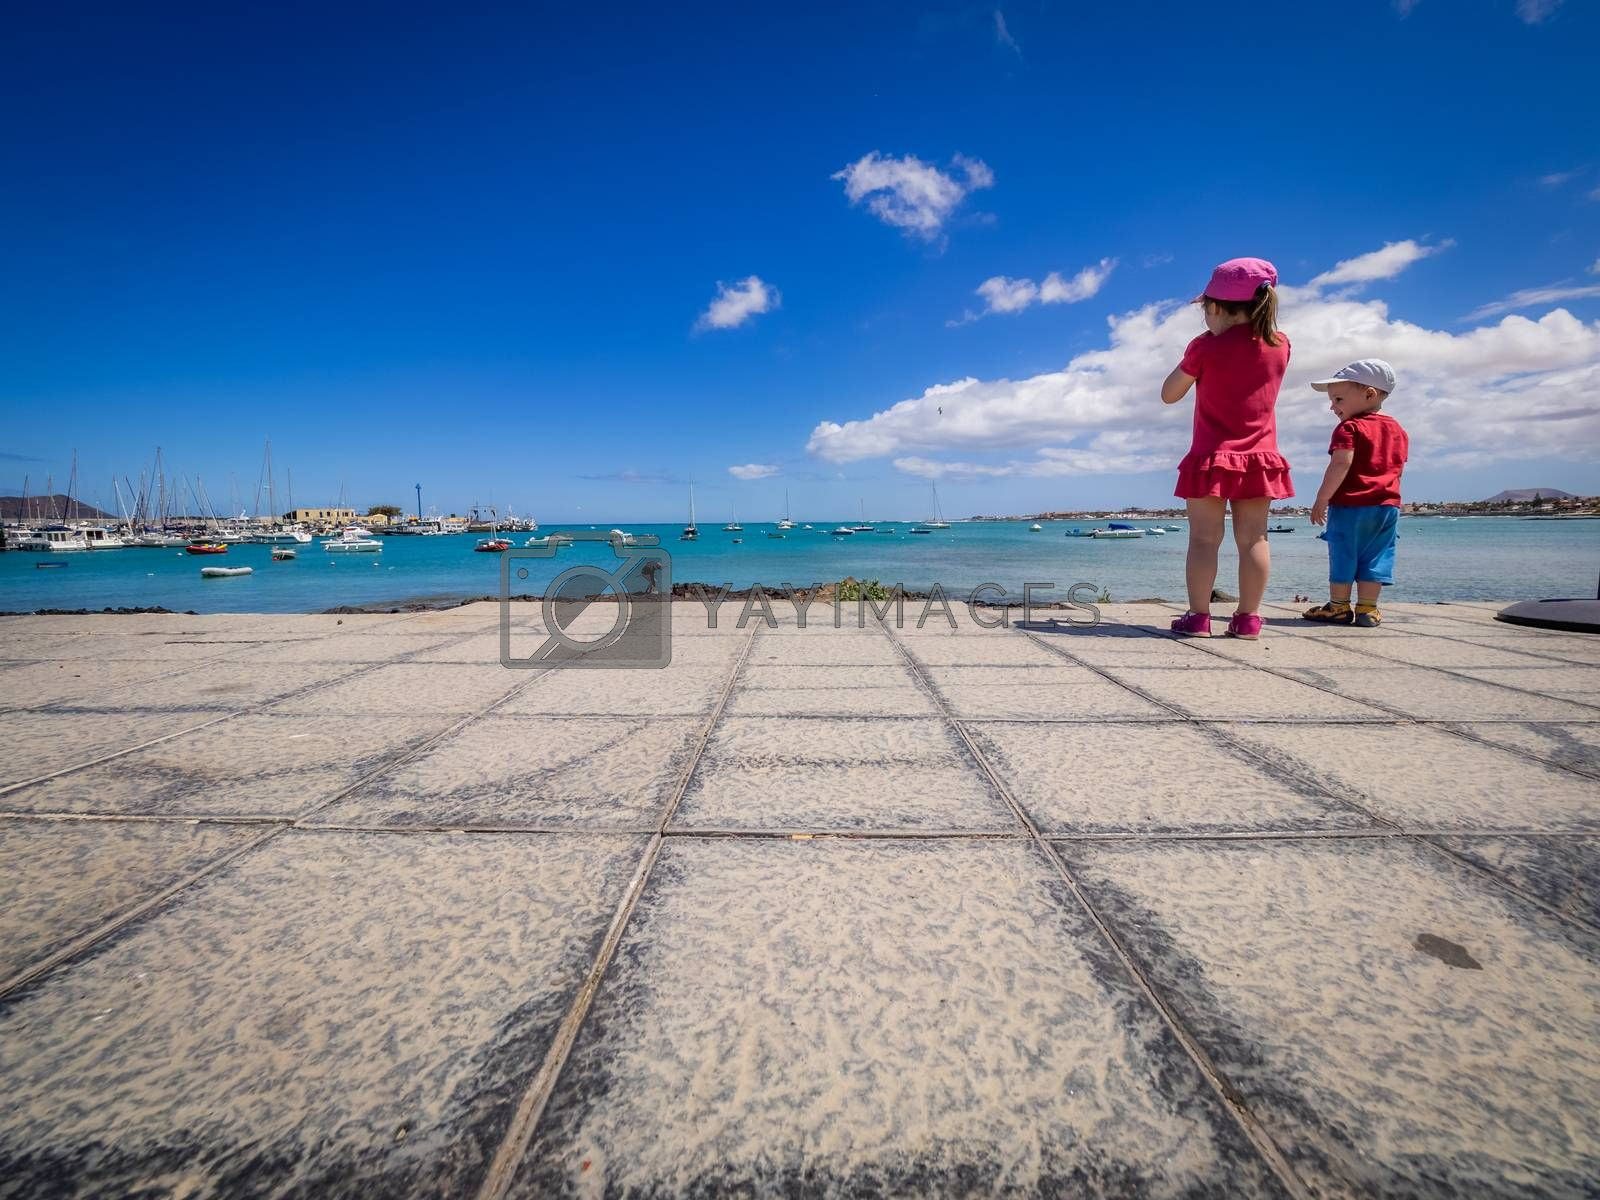 Brother and sister standing on the seaside promenade in the Corralejo harbour, Fuerteventura, Canary Islands, Spain